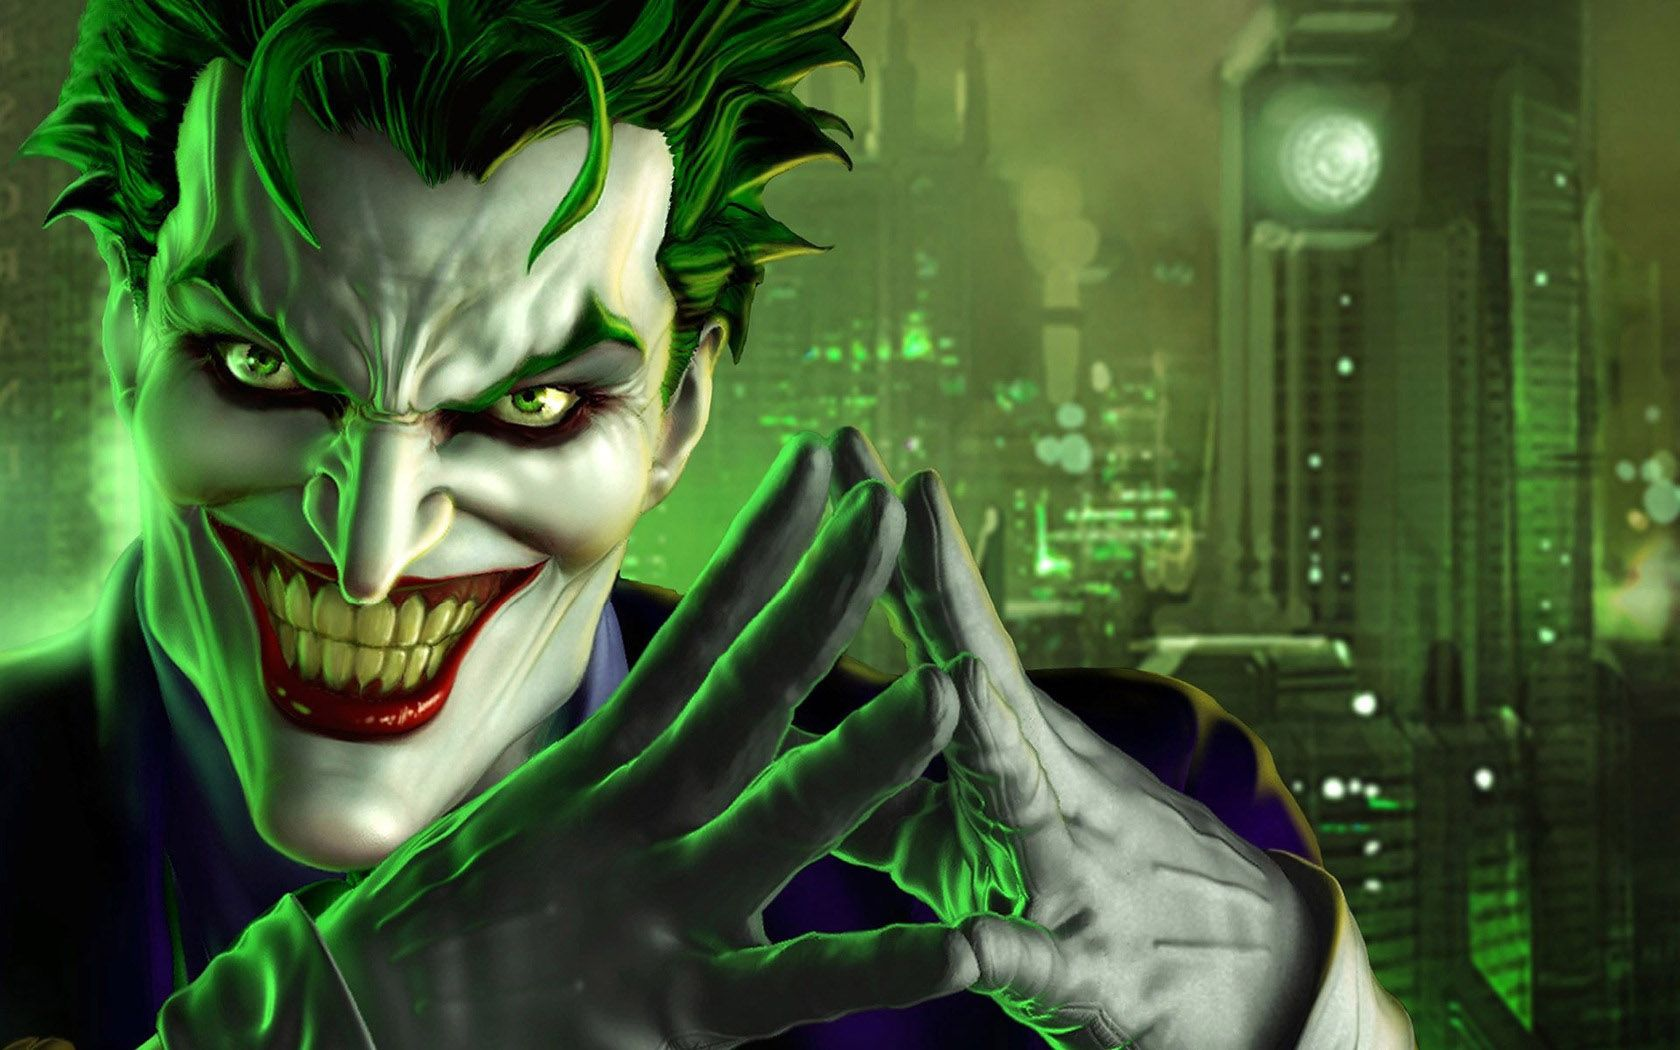 3D Wallpaper - Joker in 2019  Joker wallpapers, Joker images